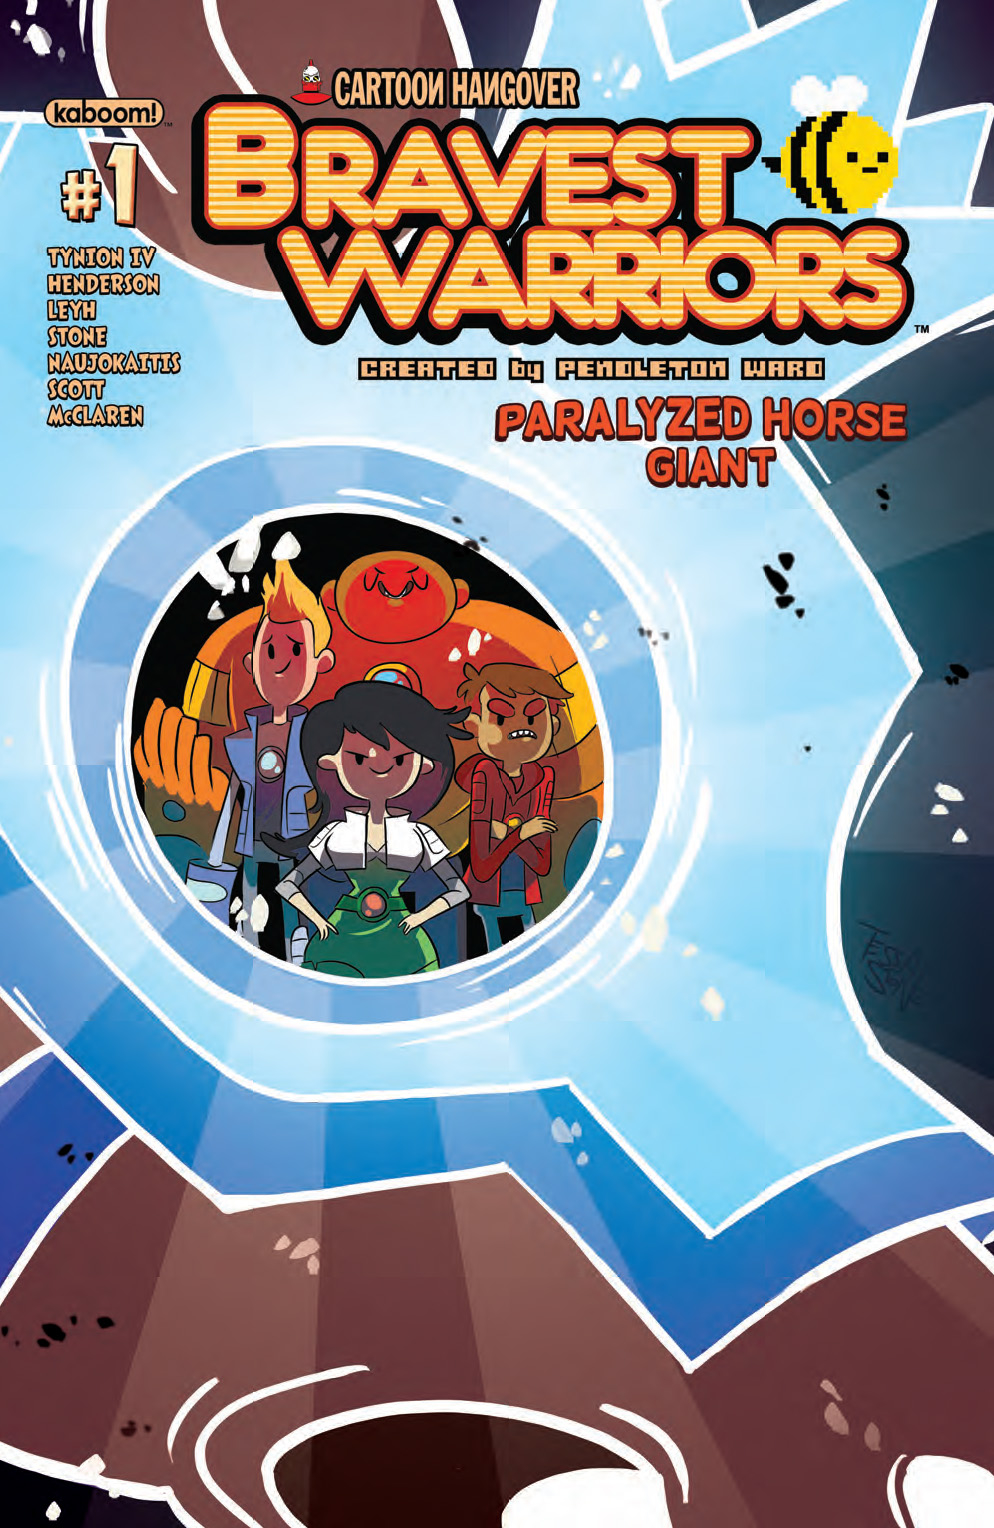 BRAVEST WARRIORS PARALYZED HORSE GIANT #1